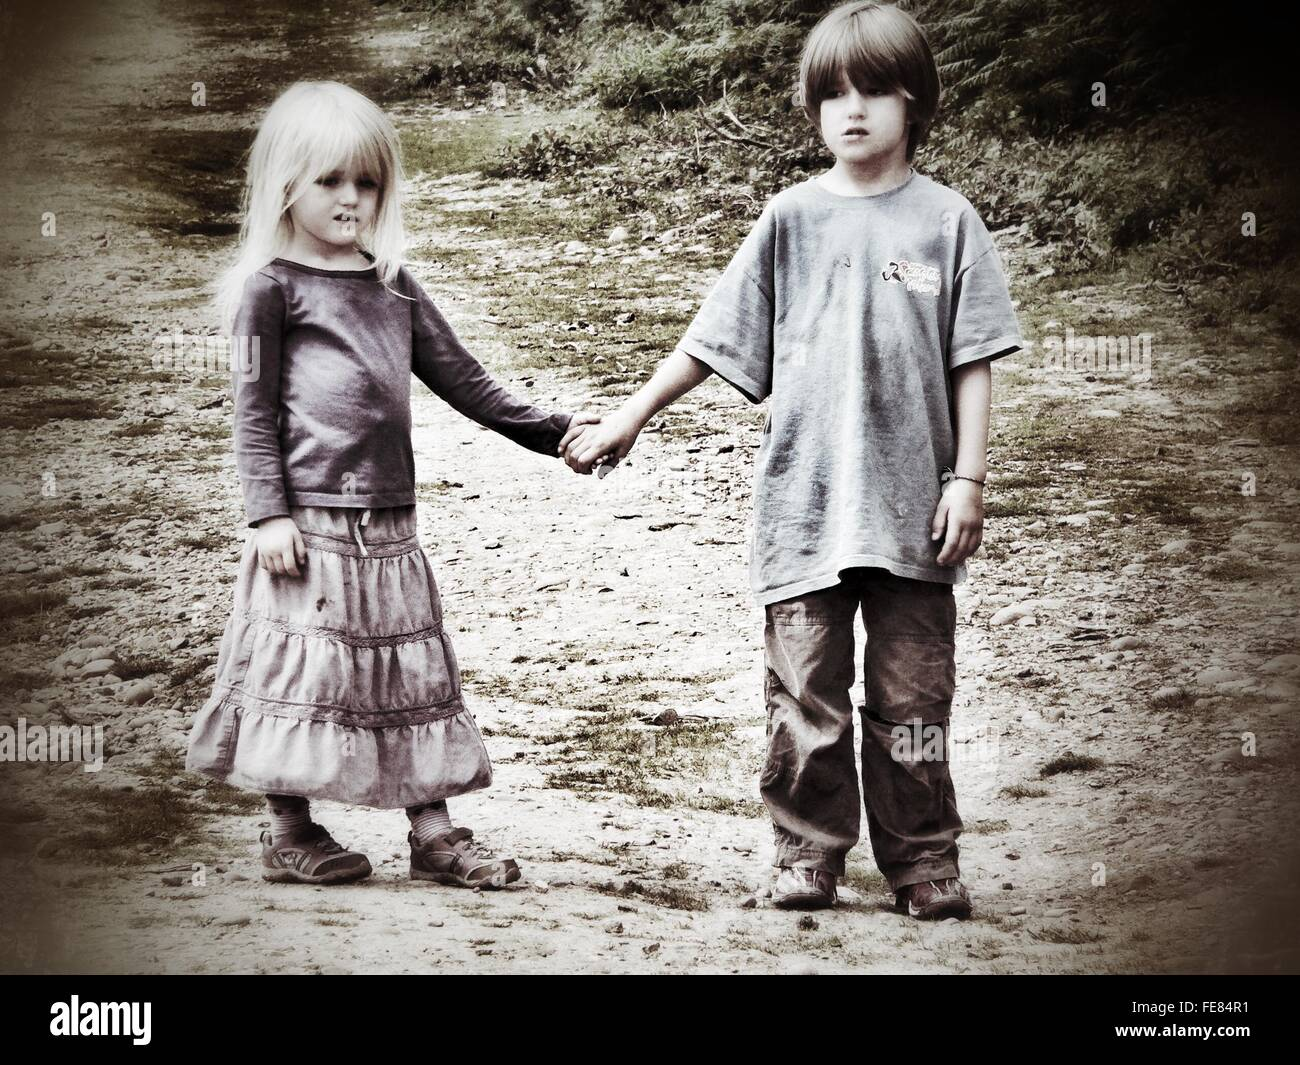 Full Length Of Siblings Holding Hands - Stock Image